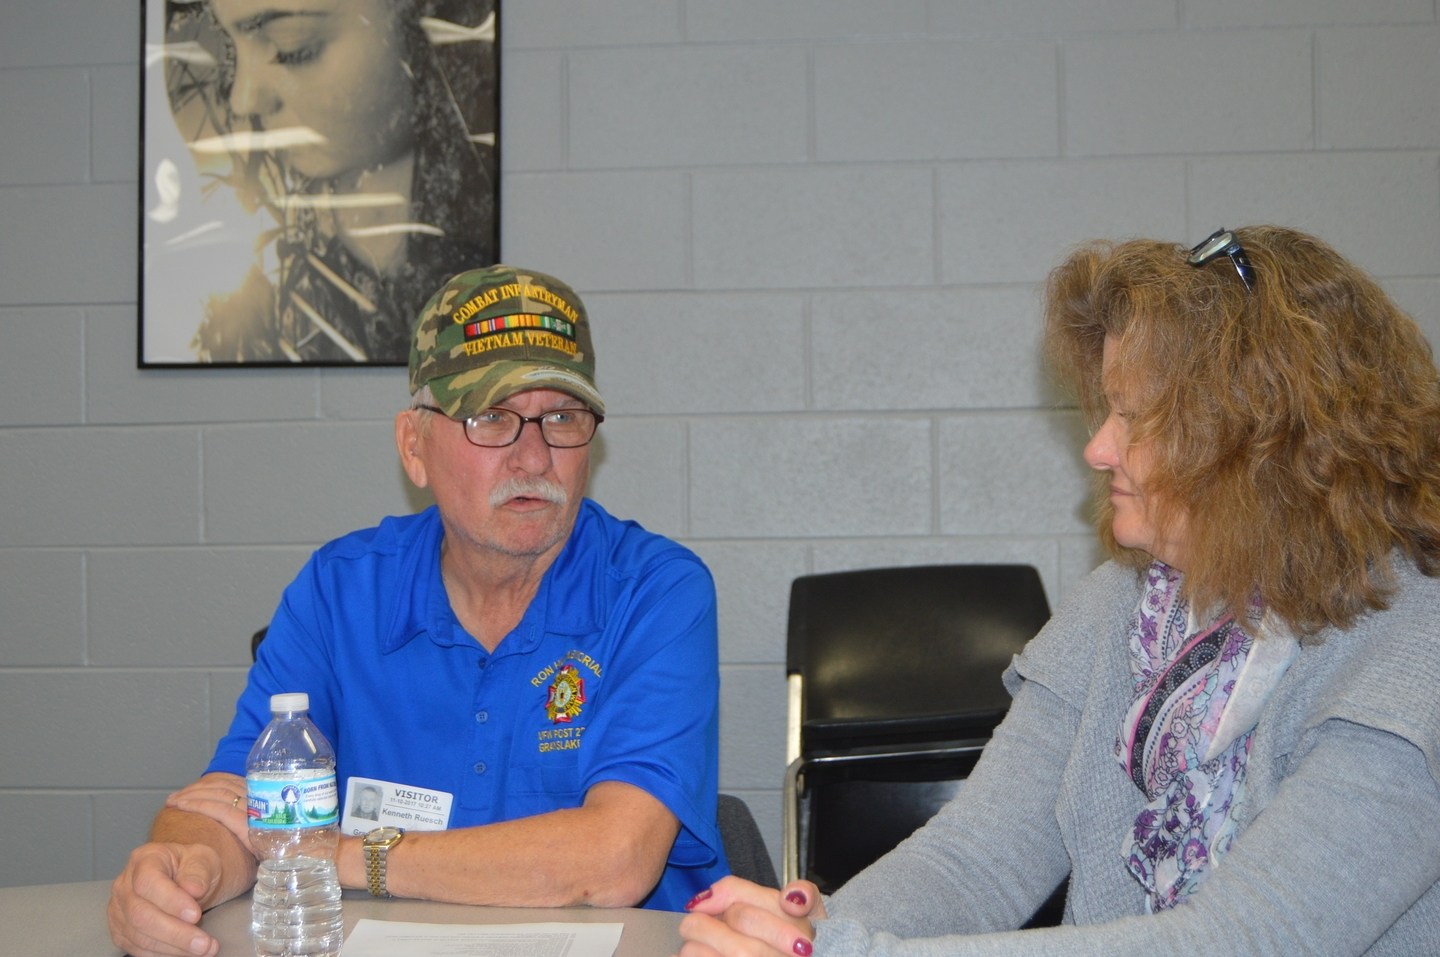 Ken Ruesch, Retired USA, Lt.Col talks with one of the teachers at the Grayslake North Veterans Day Program.